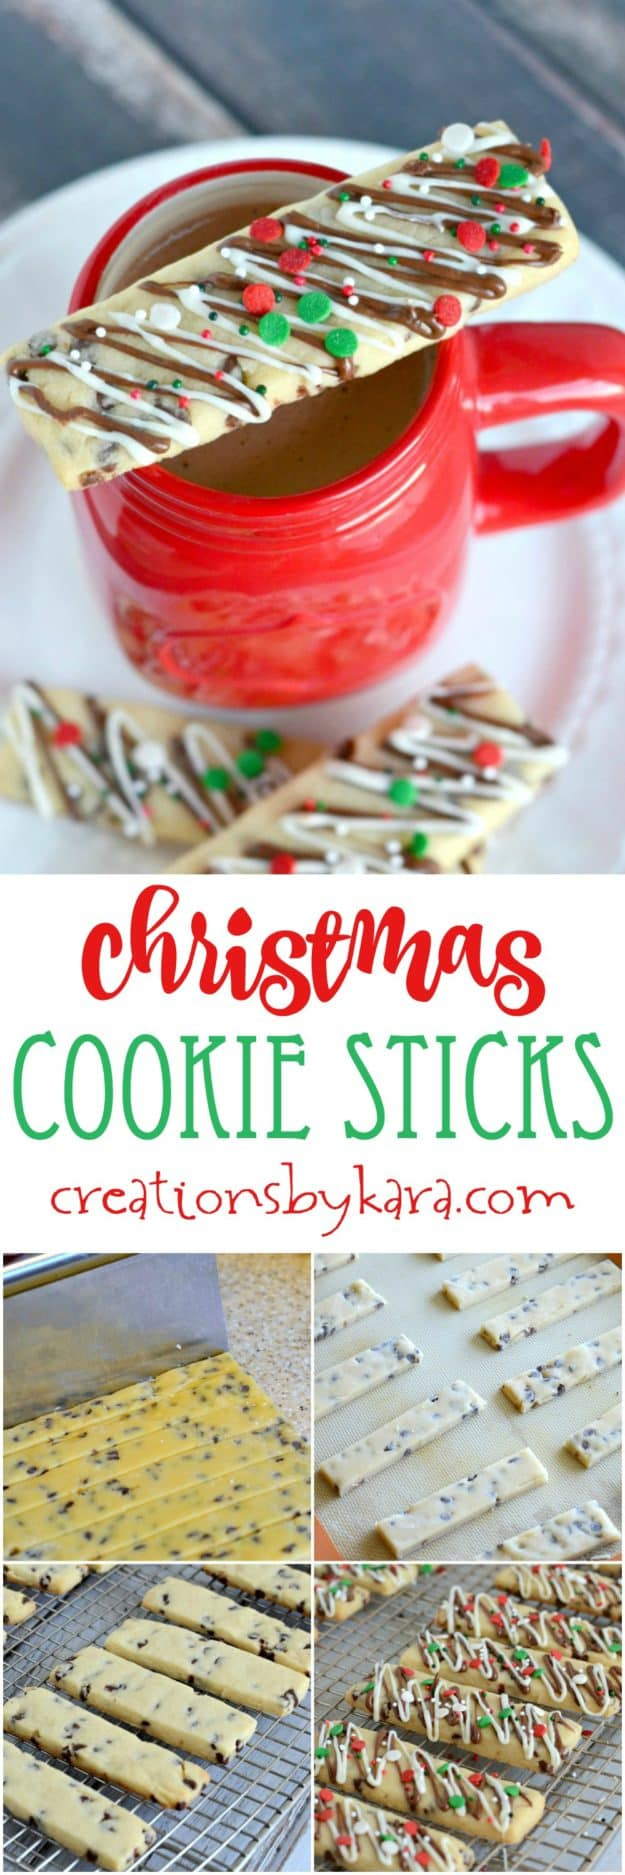 Christmas Cookie Sticks recipe collage